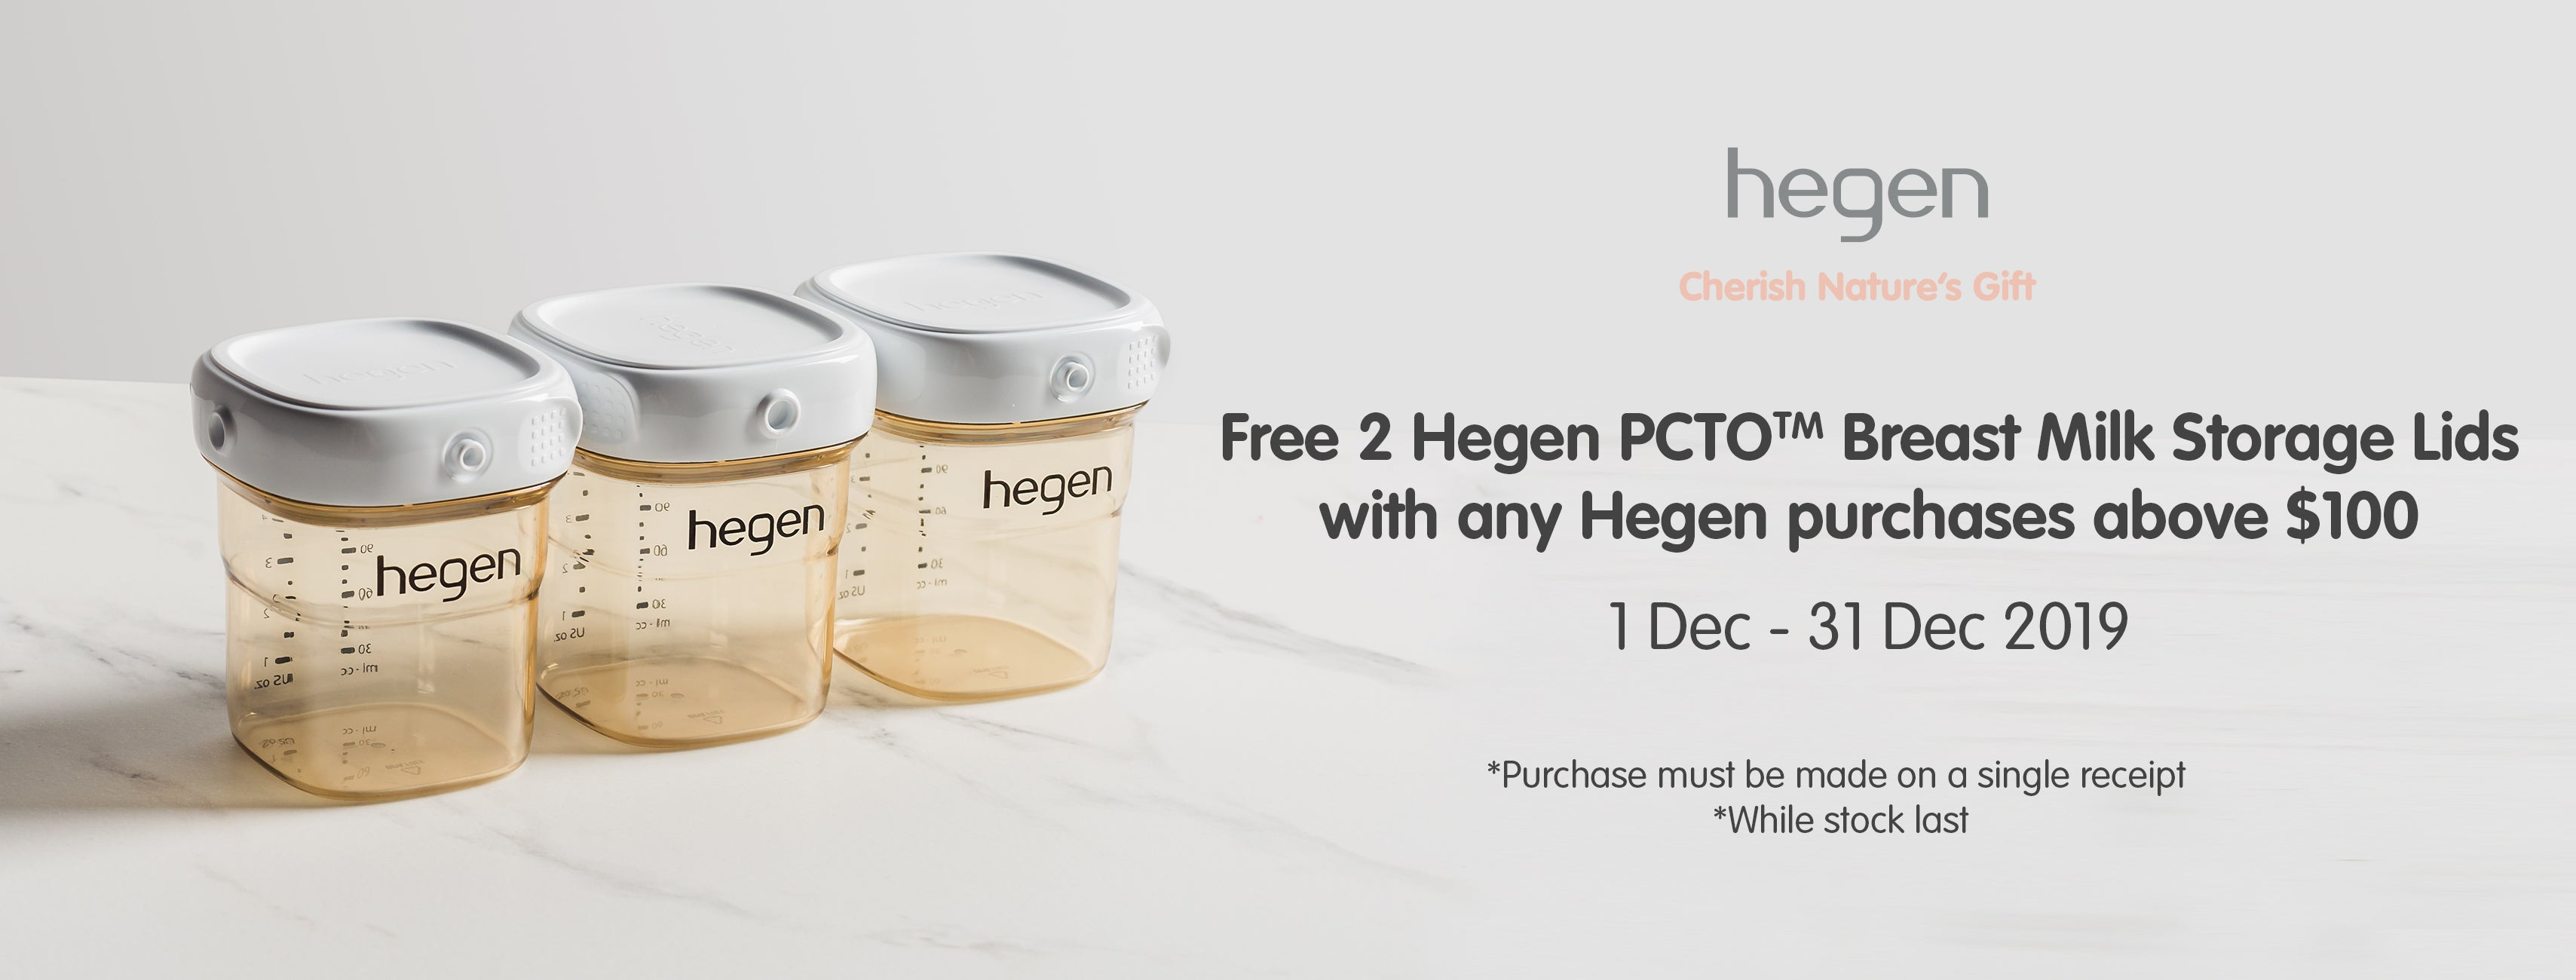 Hegen Christmas Promotion 2019